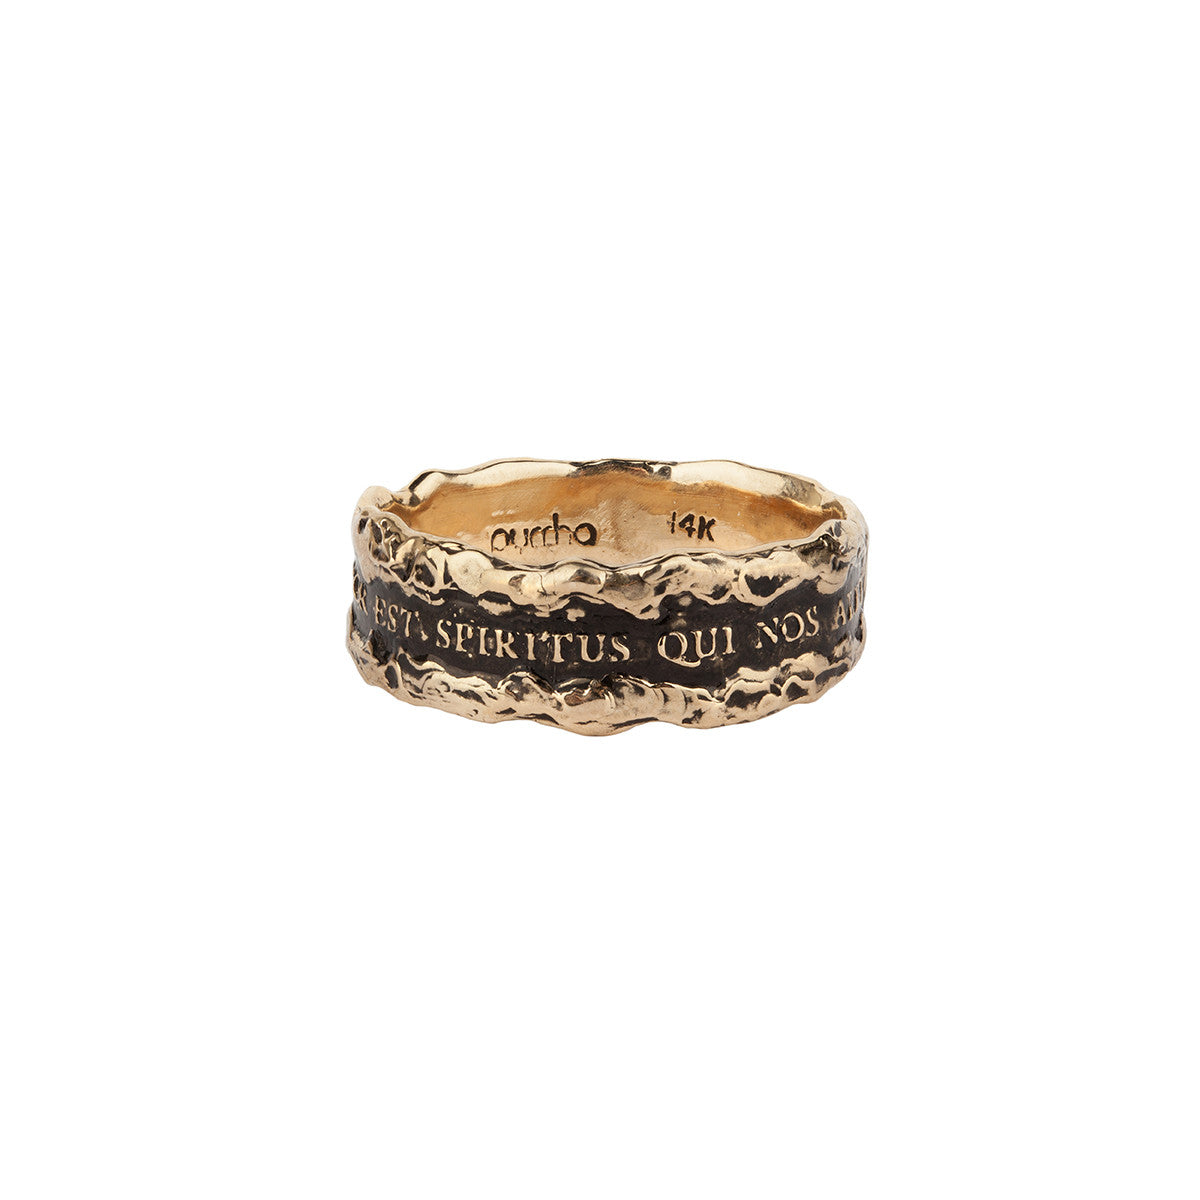 Amor Est Spiritus Qui Nos Alet (Love is the Breath that Sustains Us) Wide 14K Gold Textured Band Ring